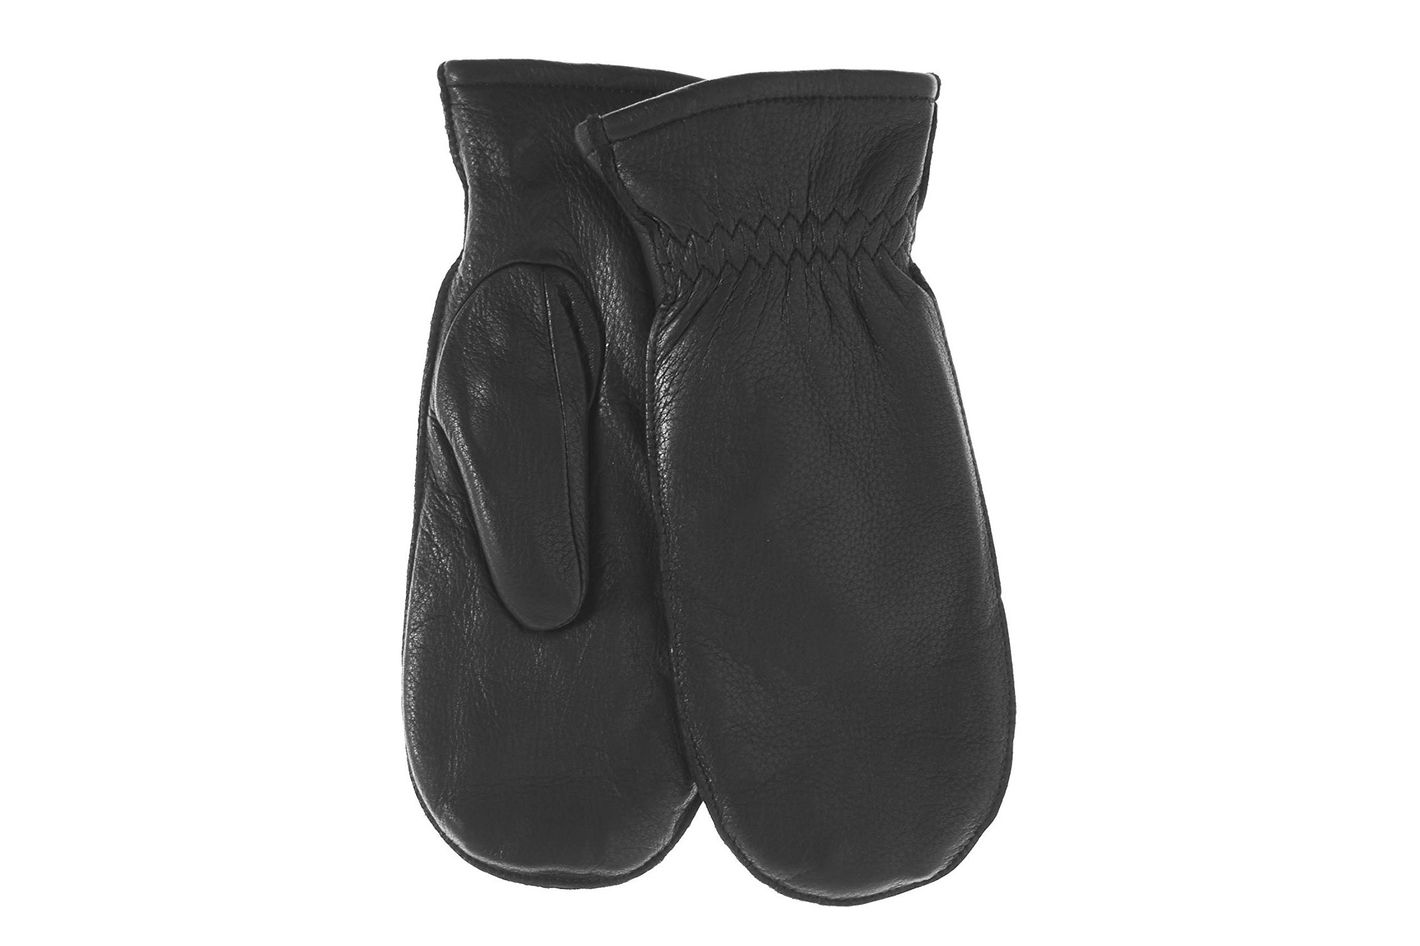 b17b23e784e7d Pratt and Hart Women's Winter Deerskin Leather Mittens With Finger Liners